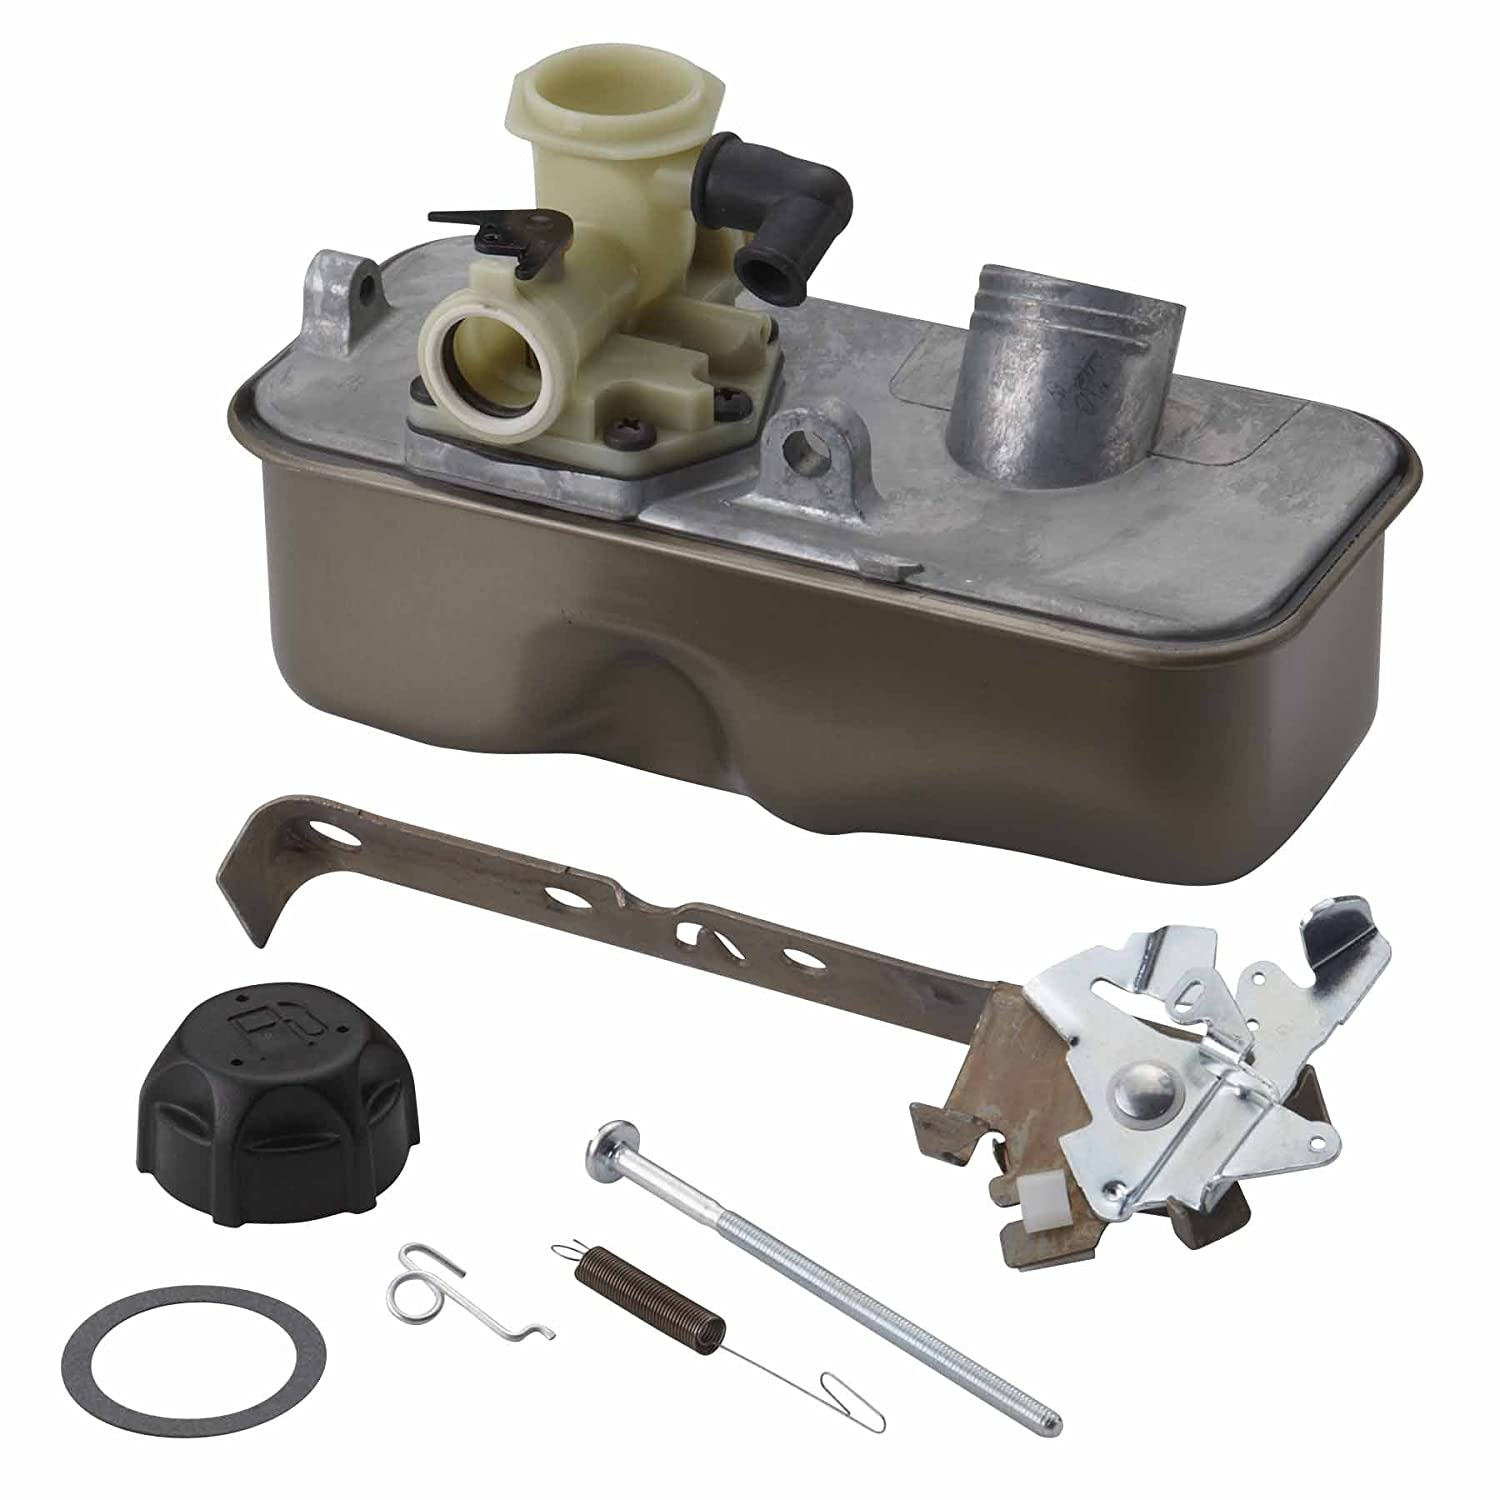 Briggs & Stratton 495912 Carburetor and Tank Kit